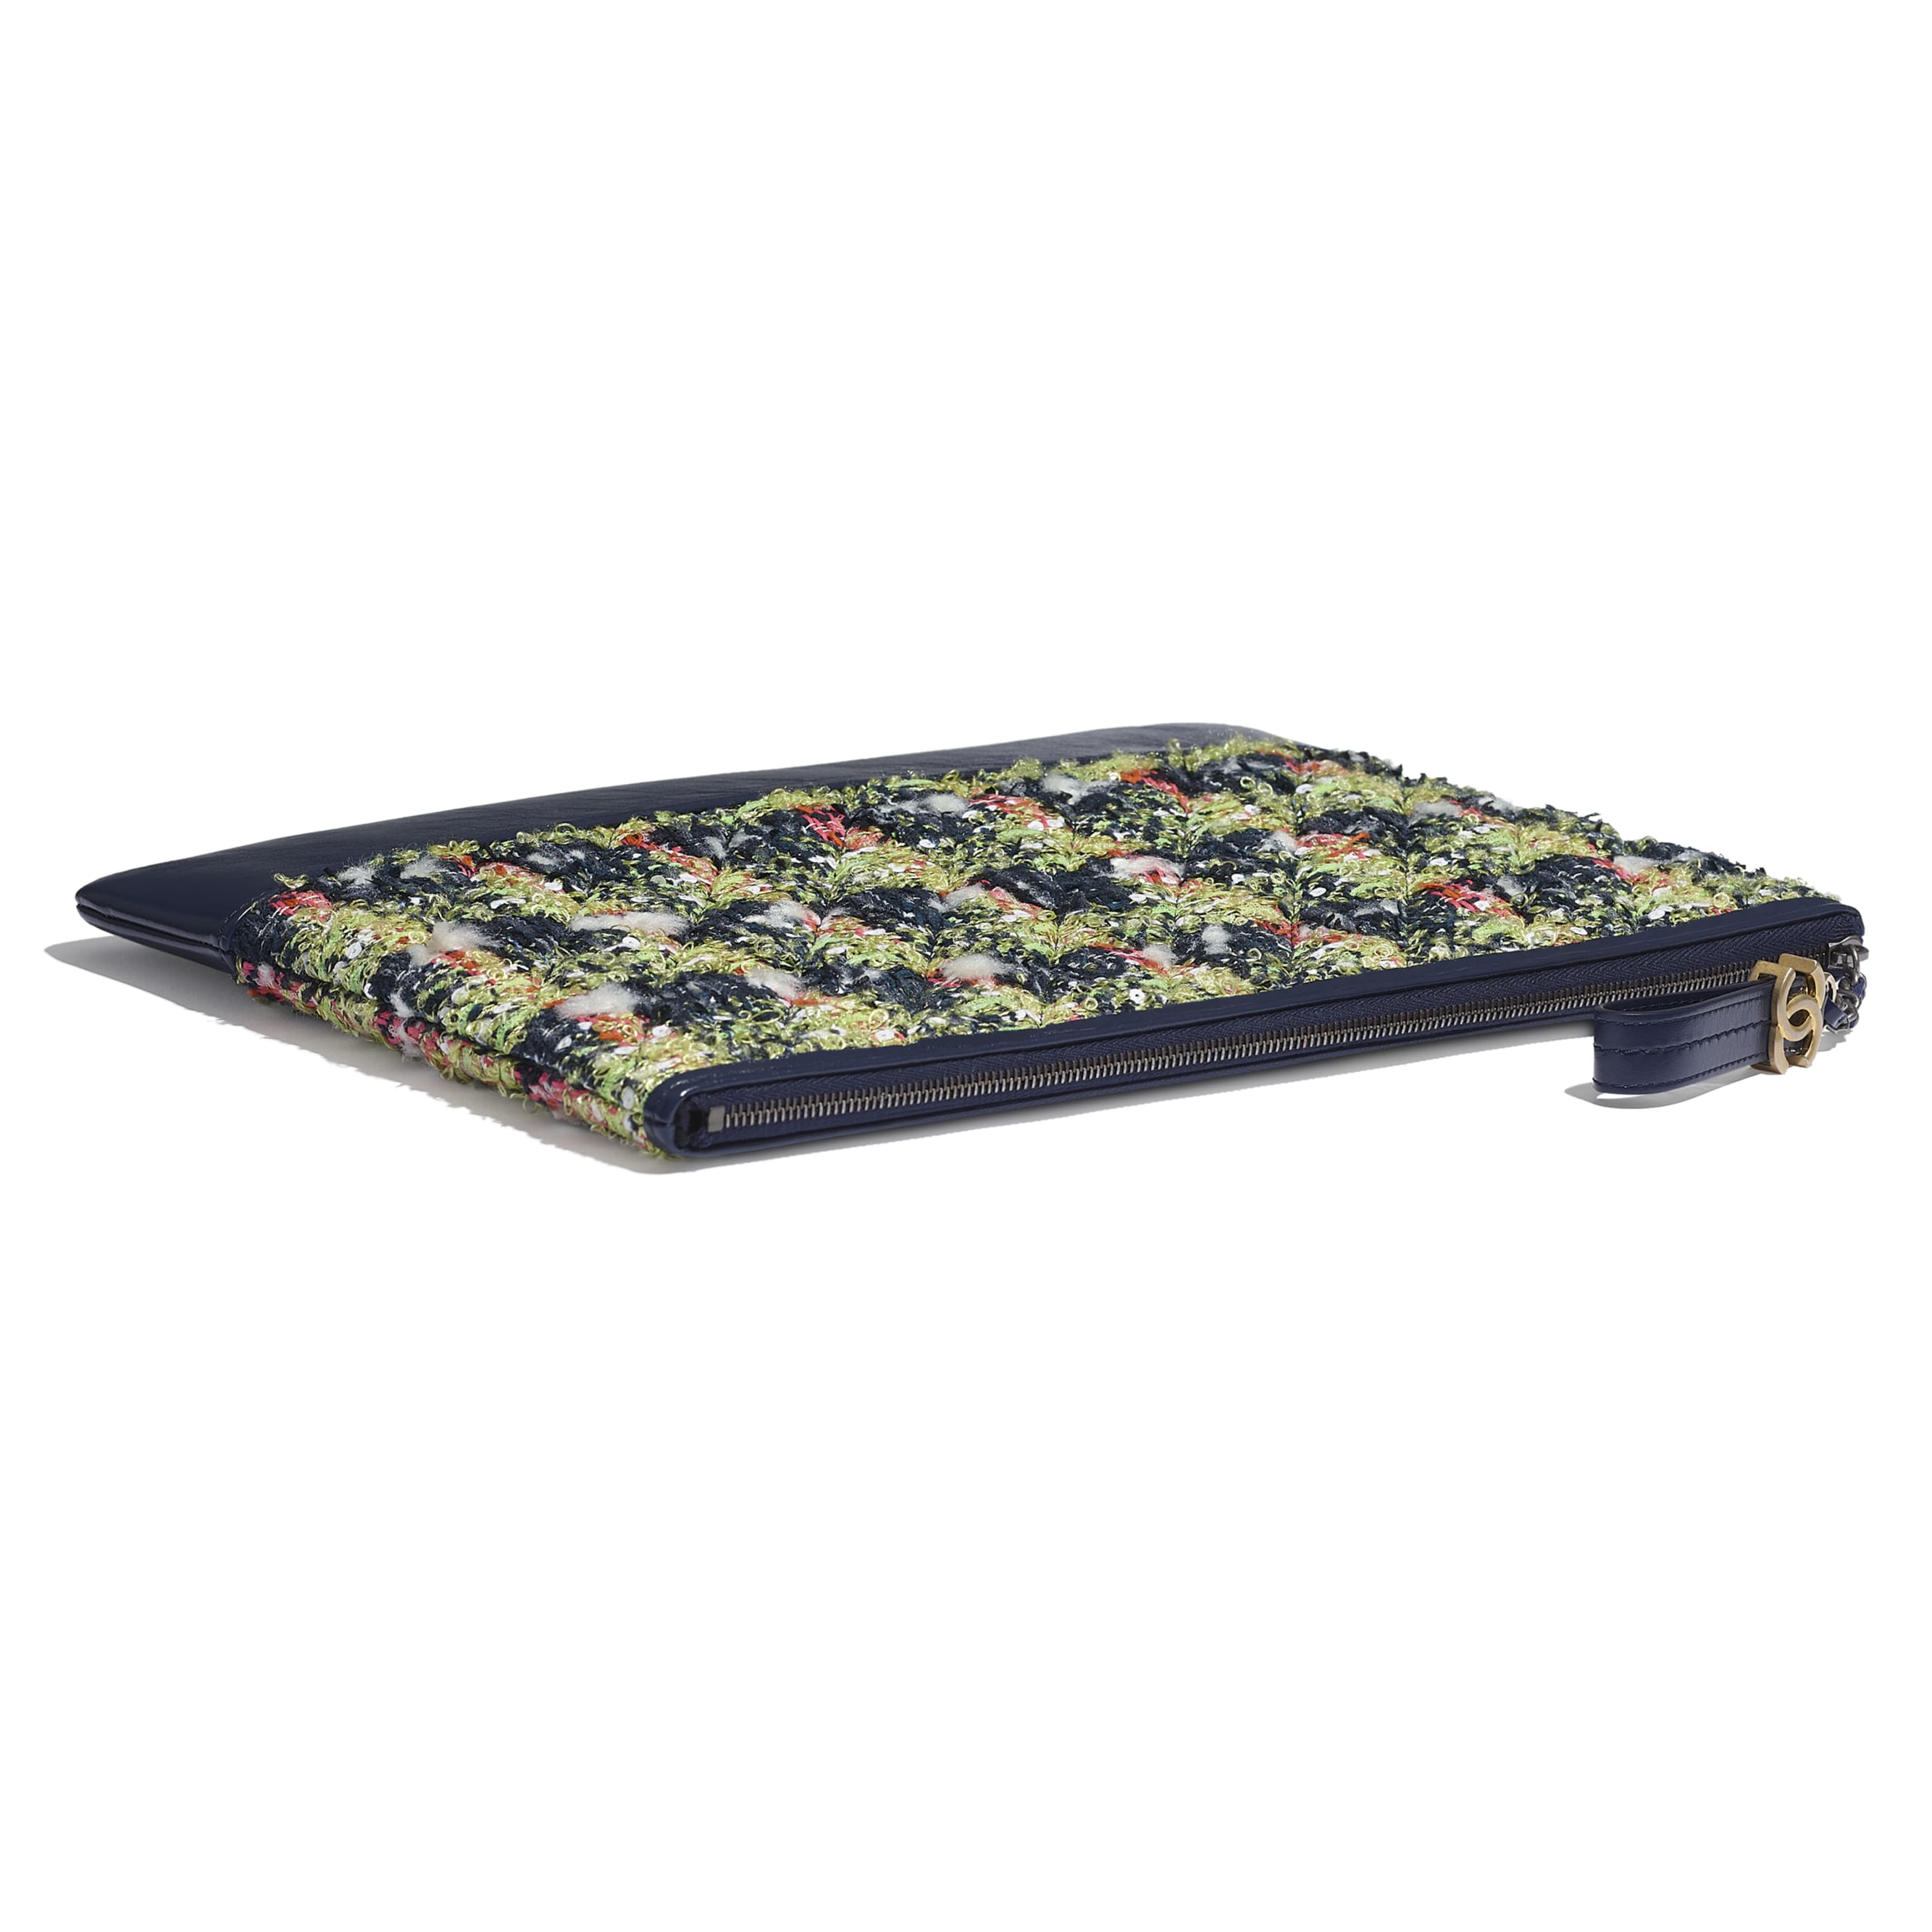 Large Clutch - Navy Blue, Green, Pink & White - Tweed, Calfskin, Gold-Tone, Silver-Tone & Ruthenium-Finish Metal - CHANEL - Extra view - see standard sized version